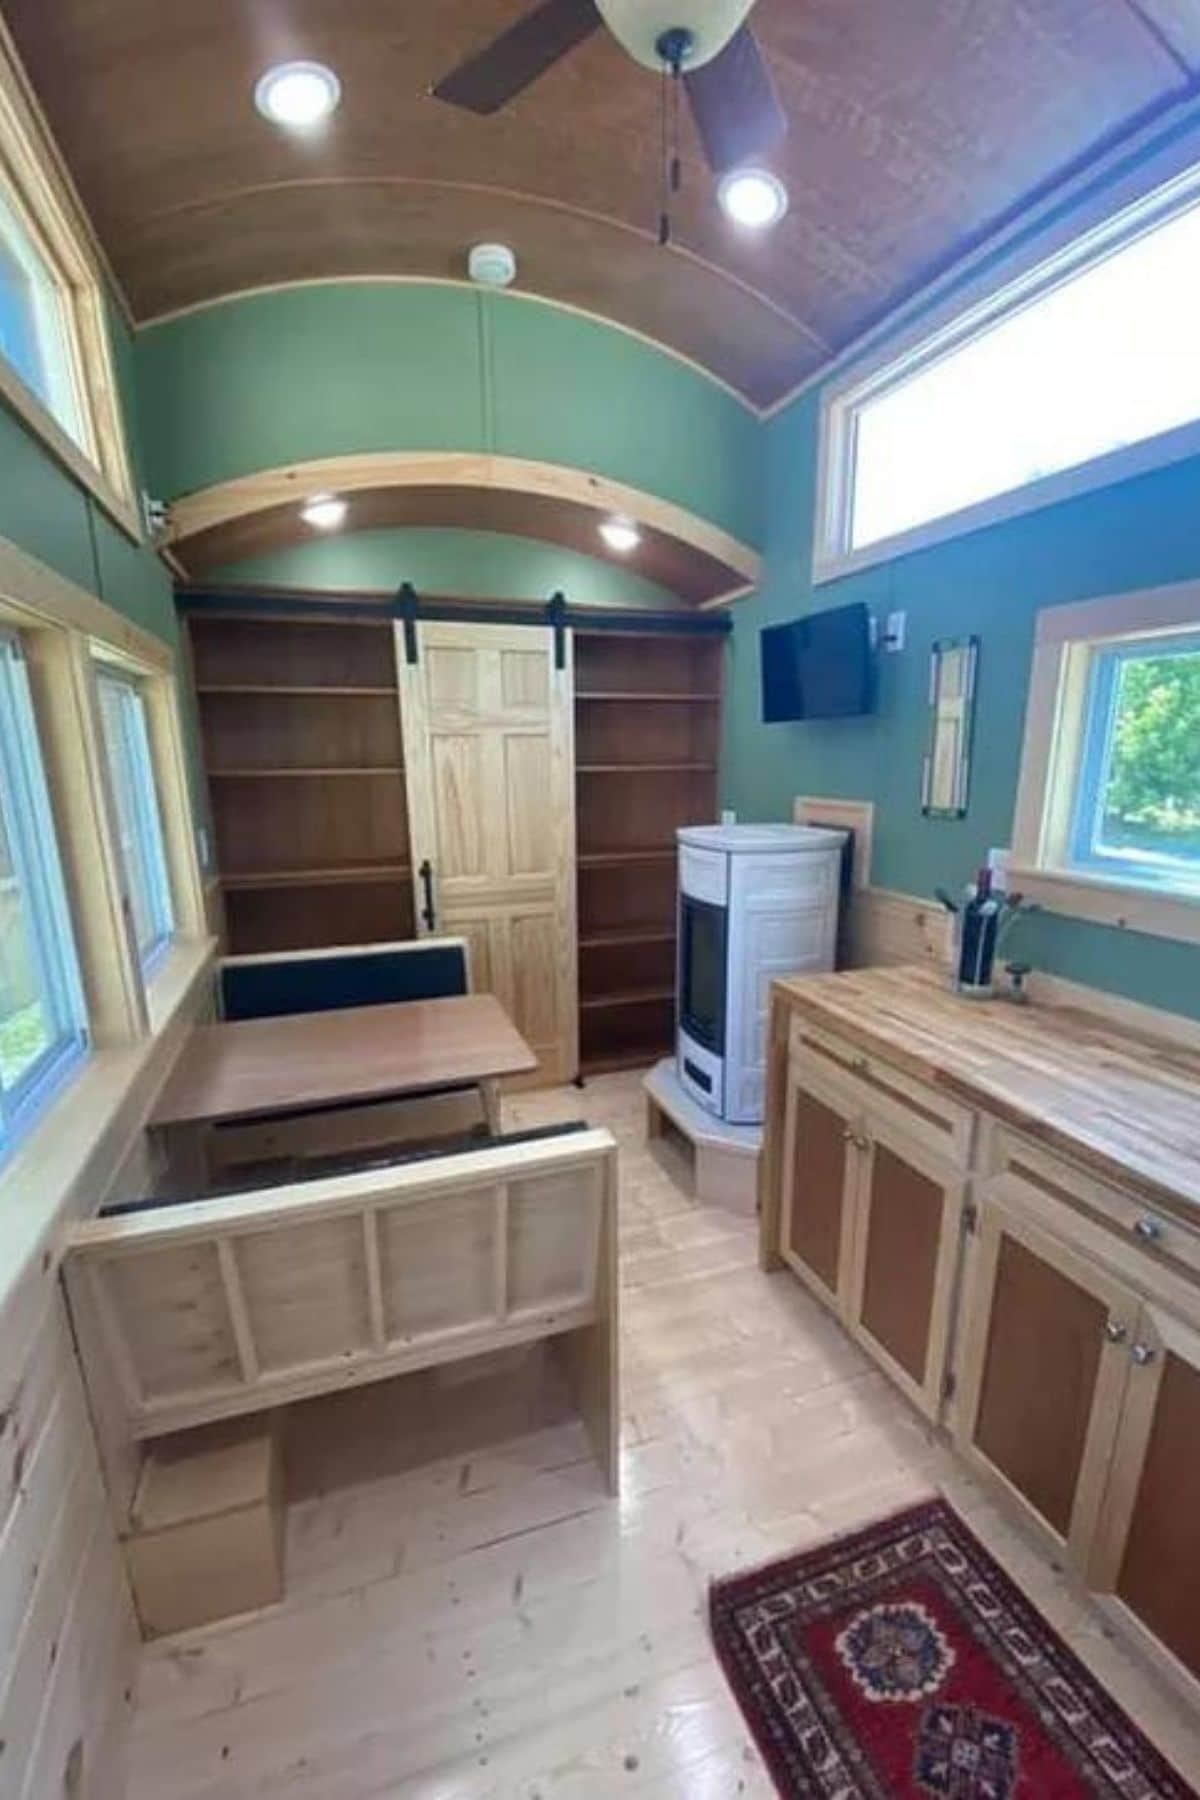 View to end of tiny home showing white stove on right side and booth on left side